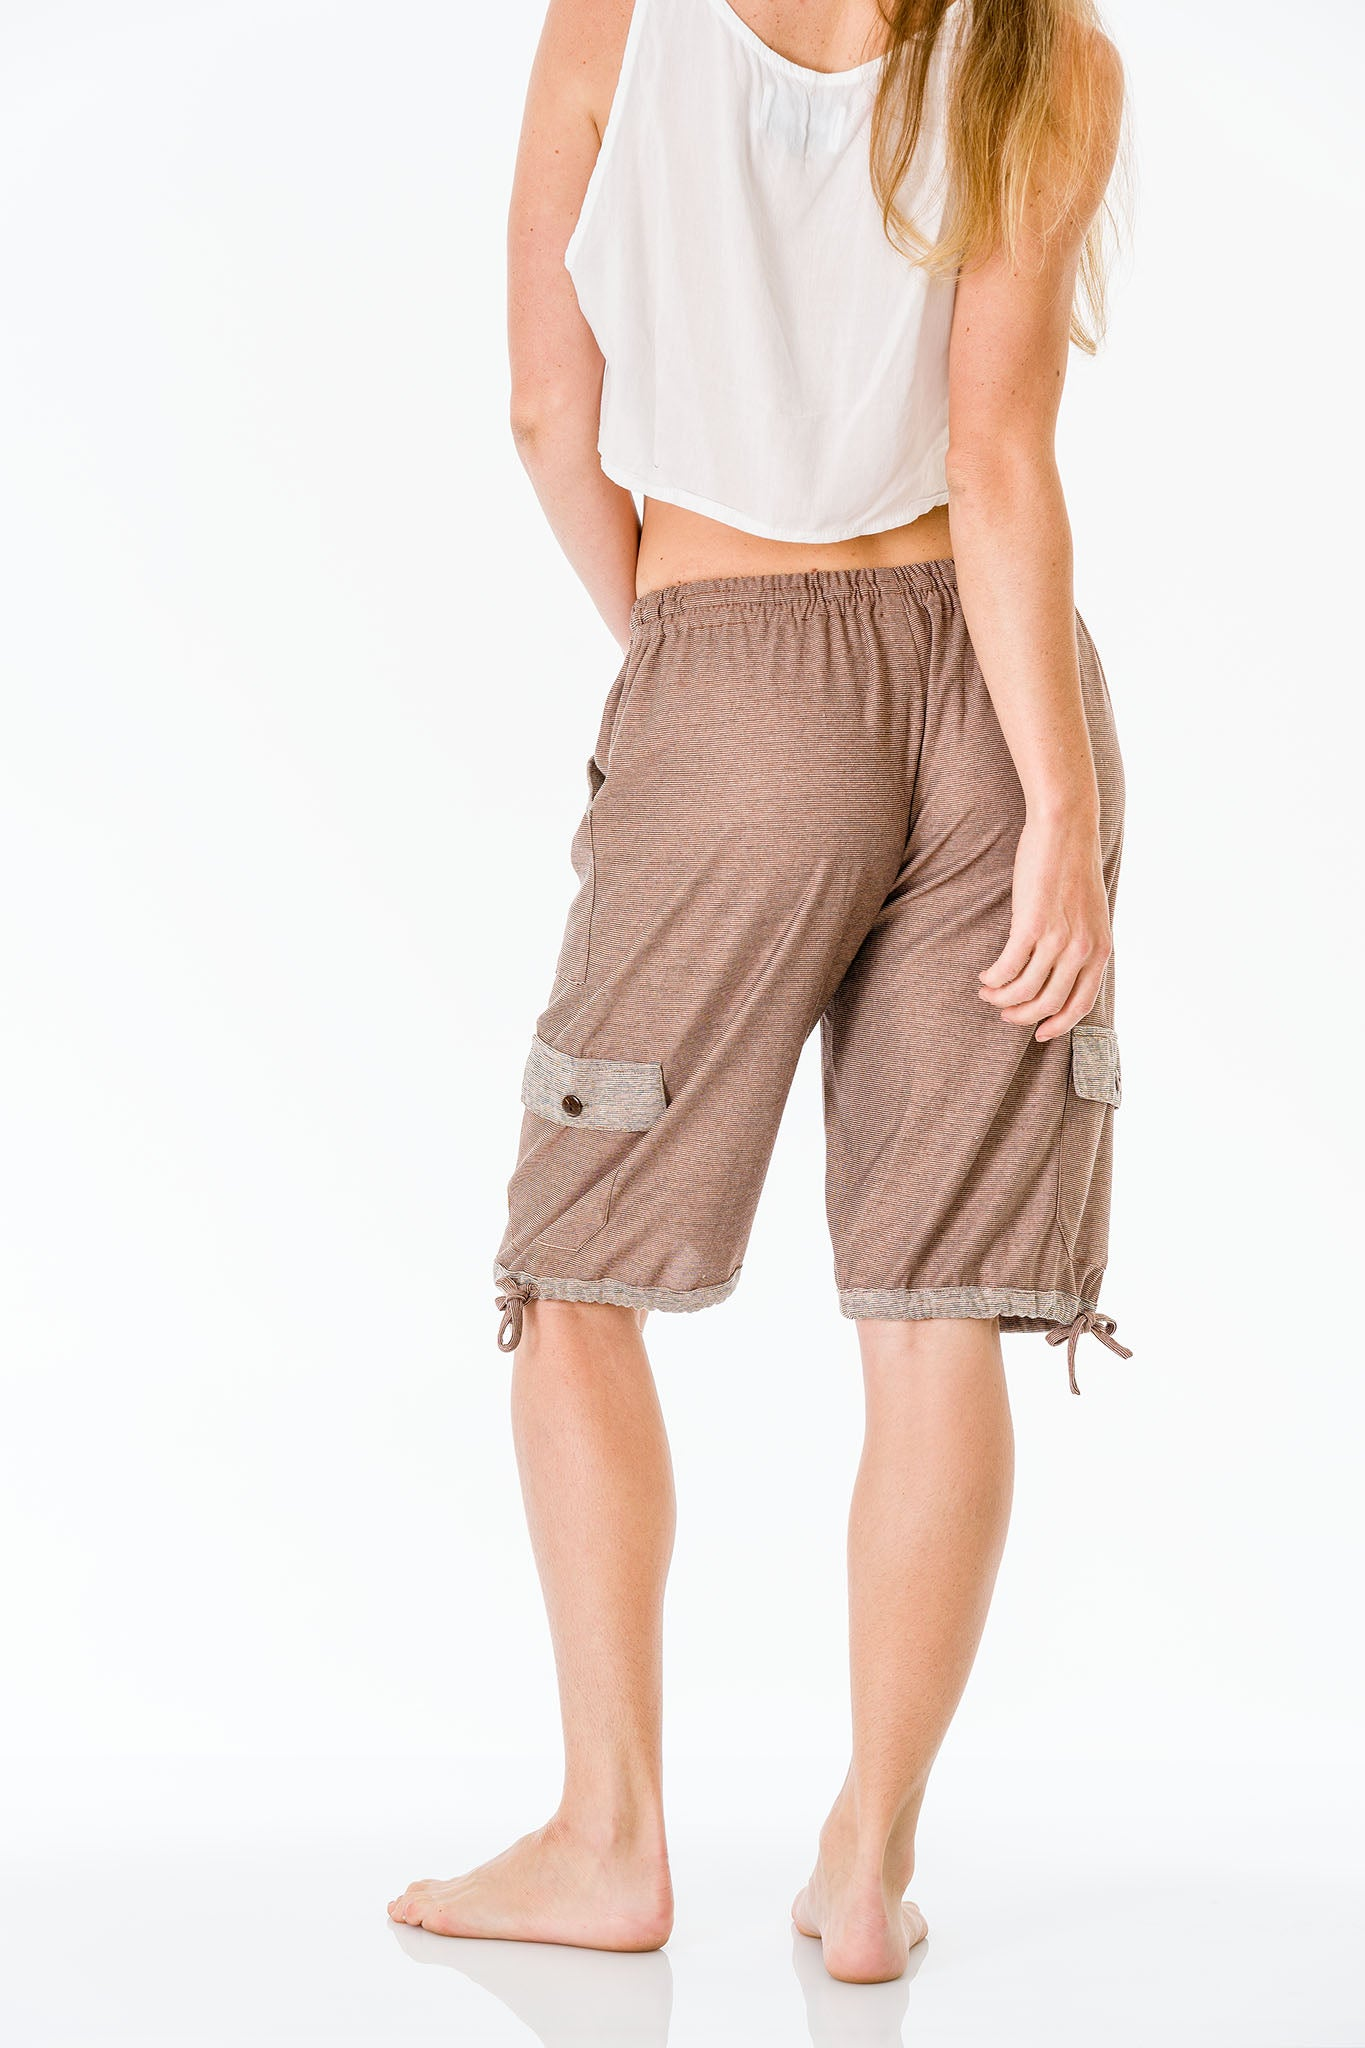 Chocolate brown Three Quarter Shorts